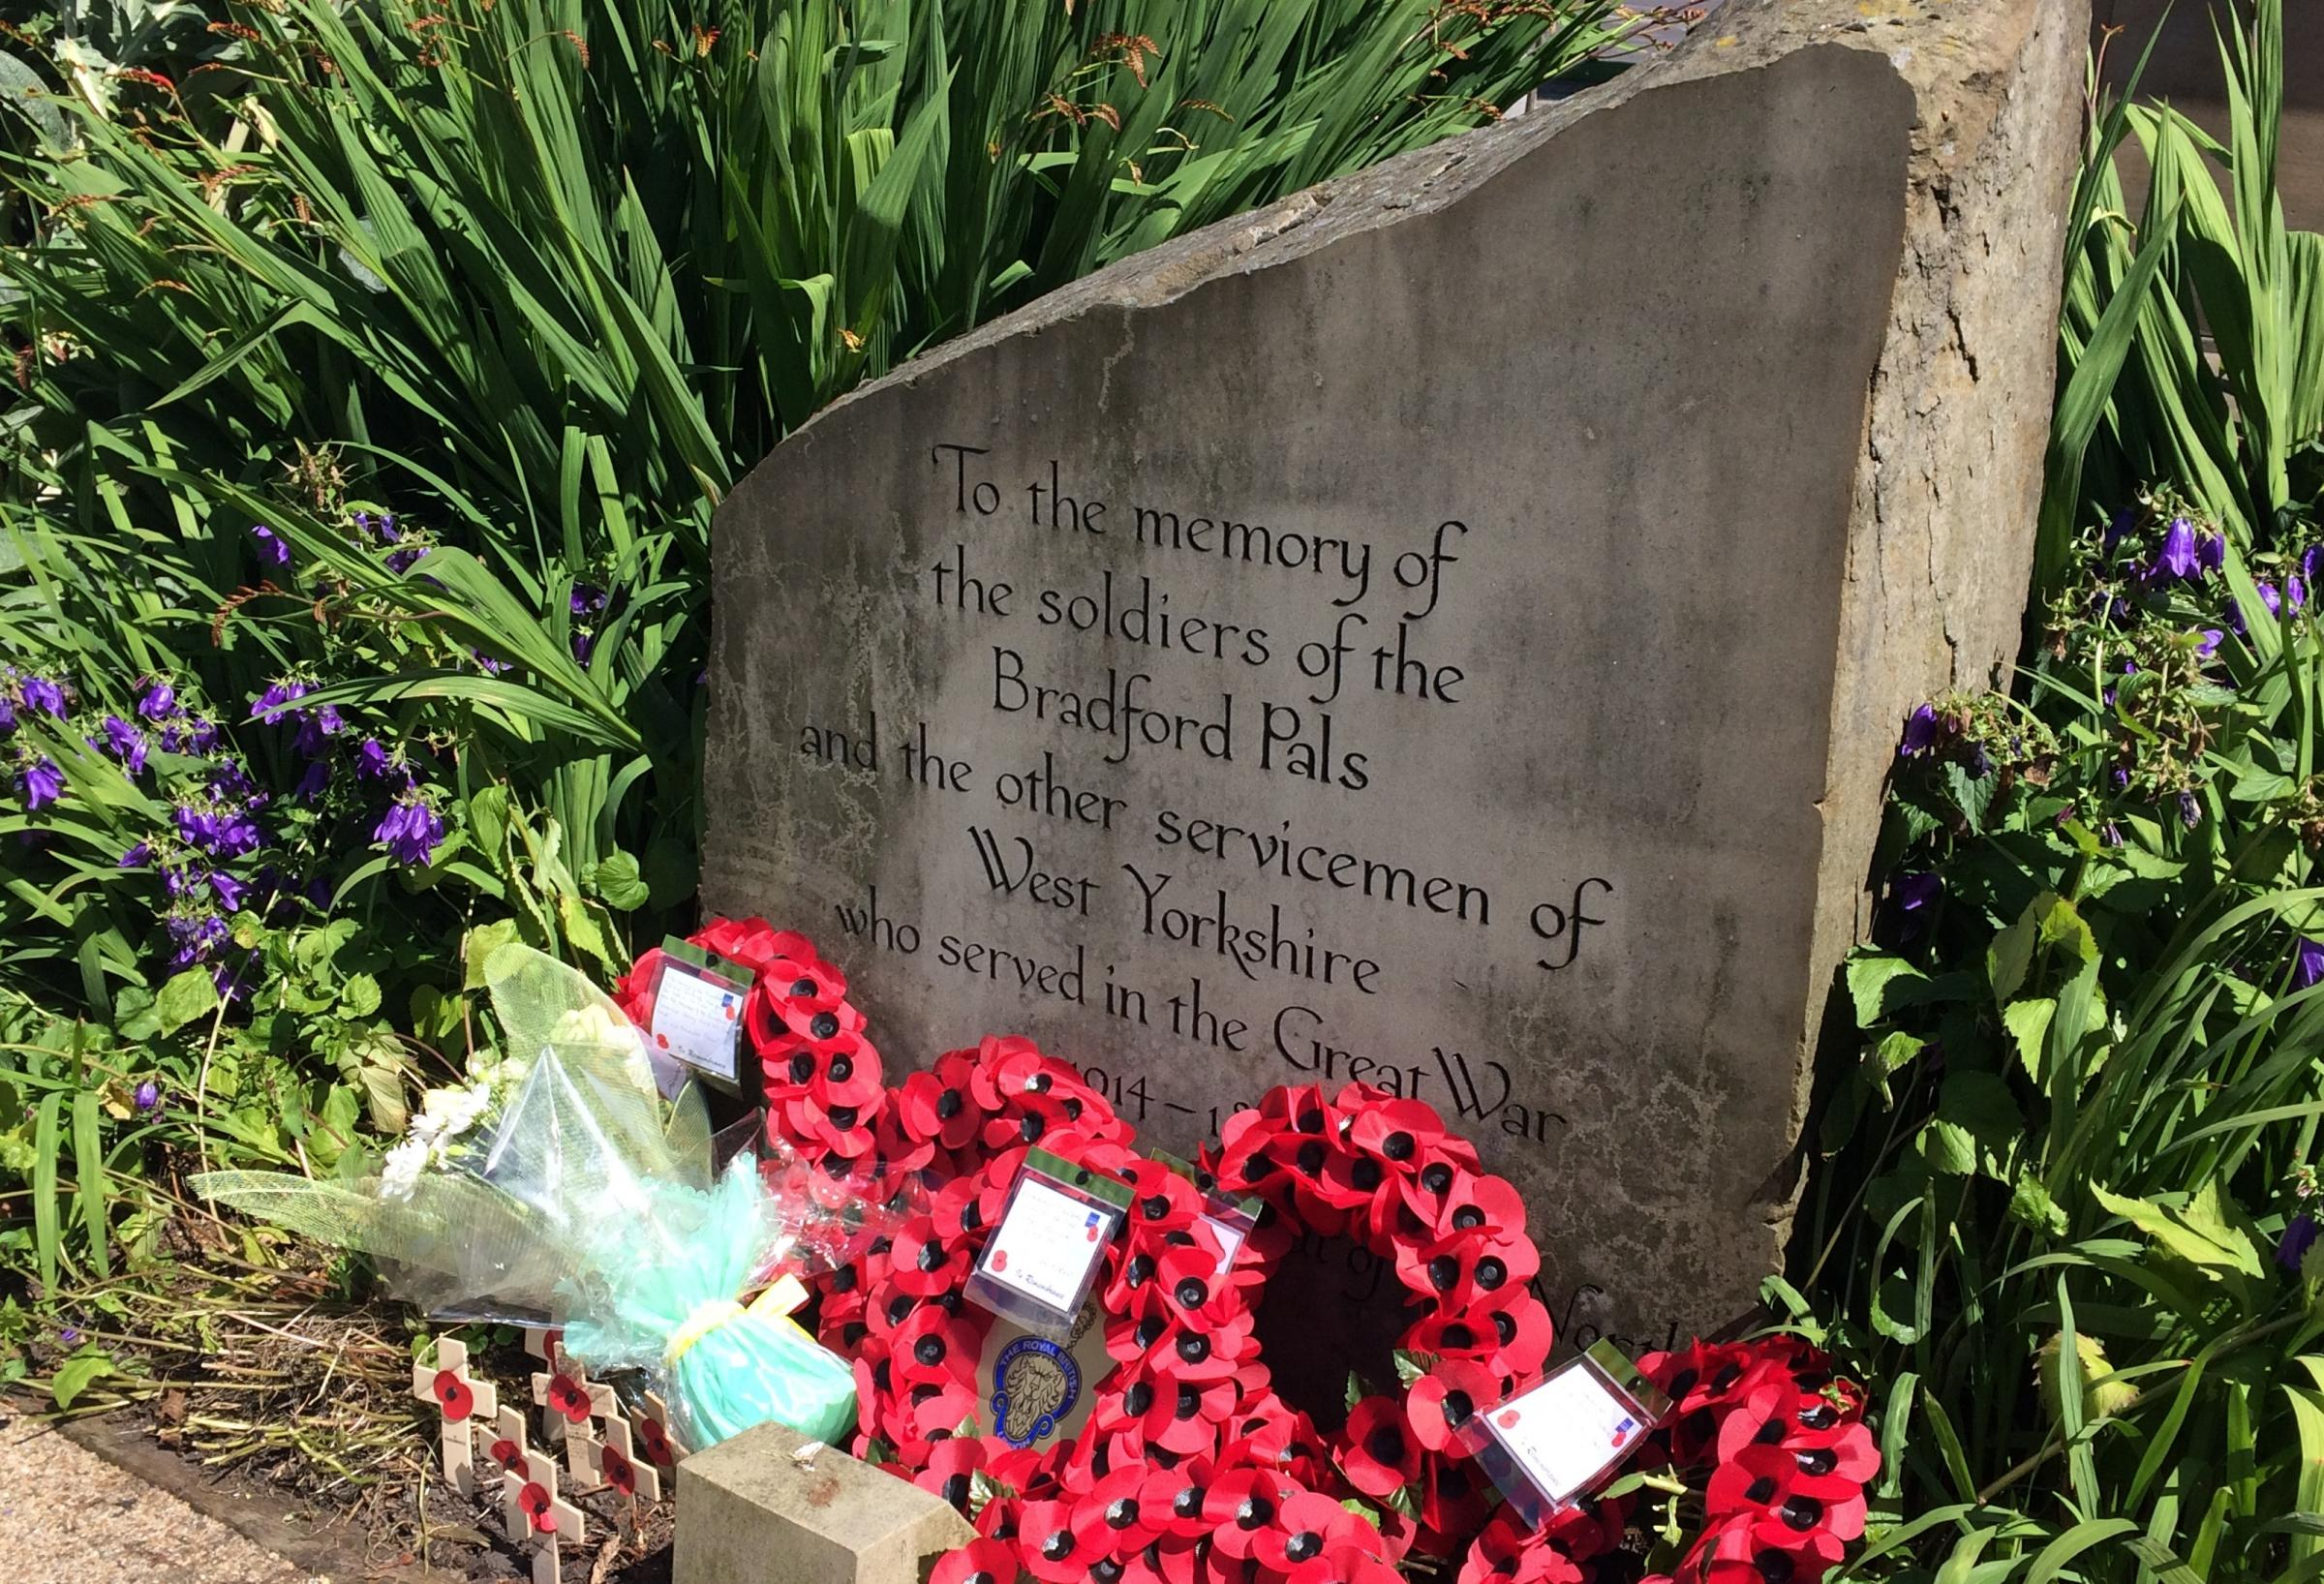 Wreaths placed earlier this month at the Bradford Pals memorial